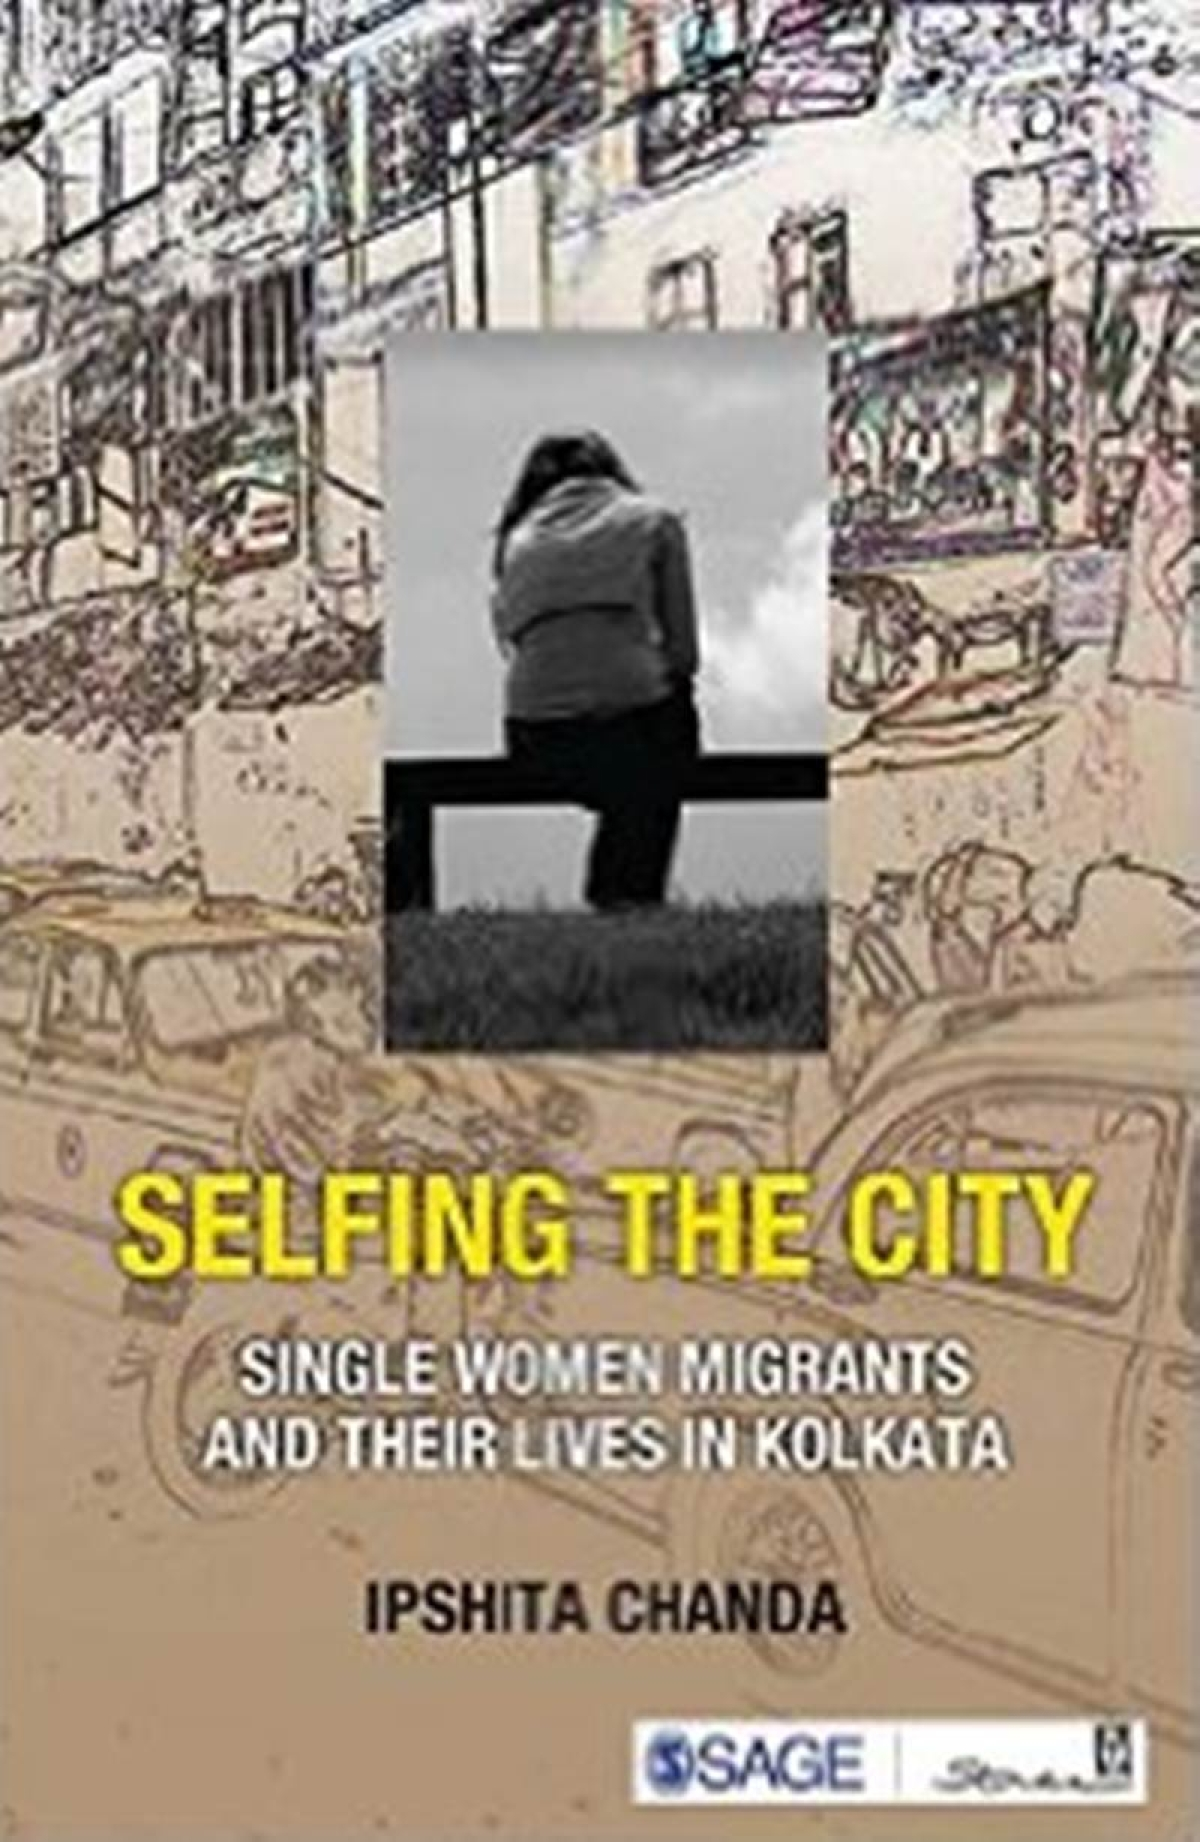 Selfing the City: Single Women Migrants and Their Lives in Kolkata- Review